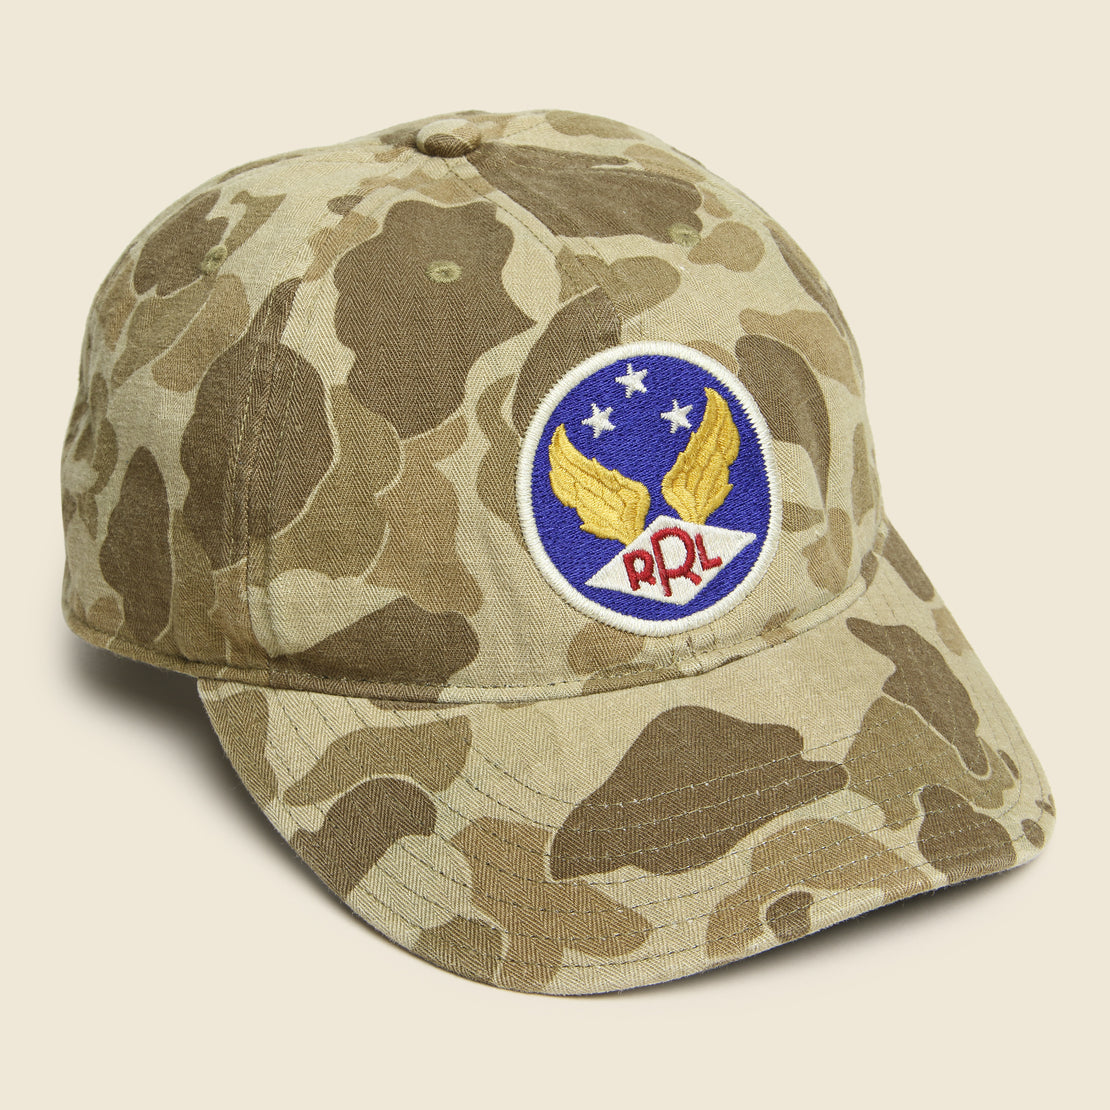 RRL Camo Ball Cap - Brown/Tan